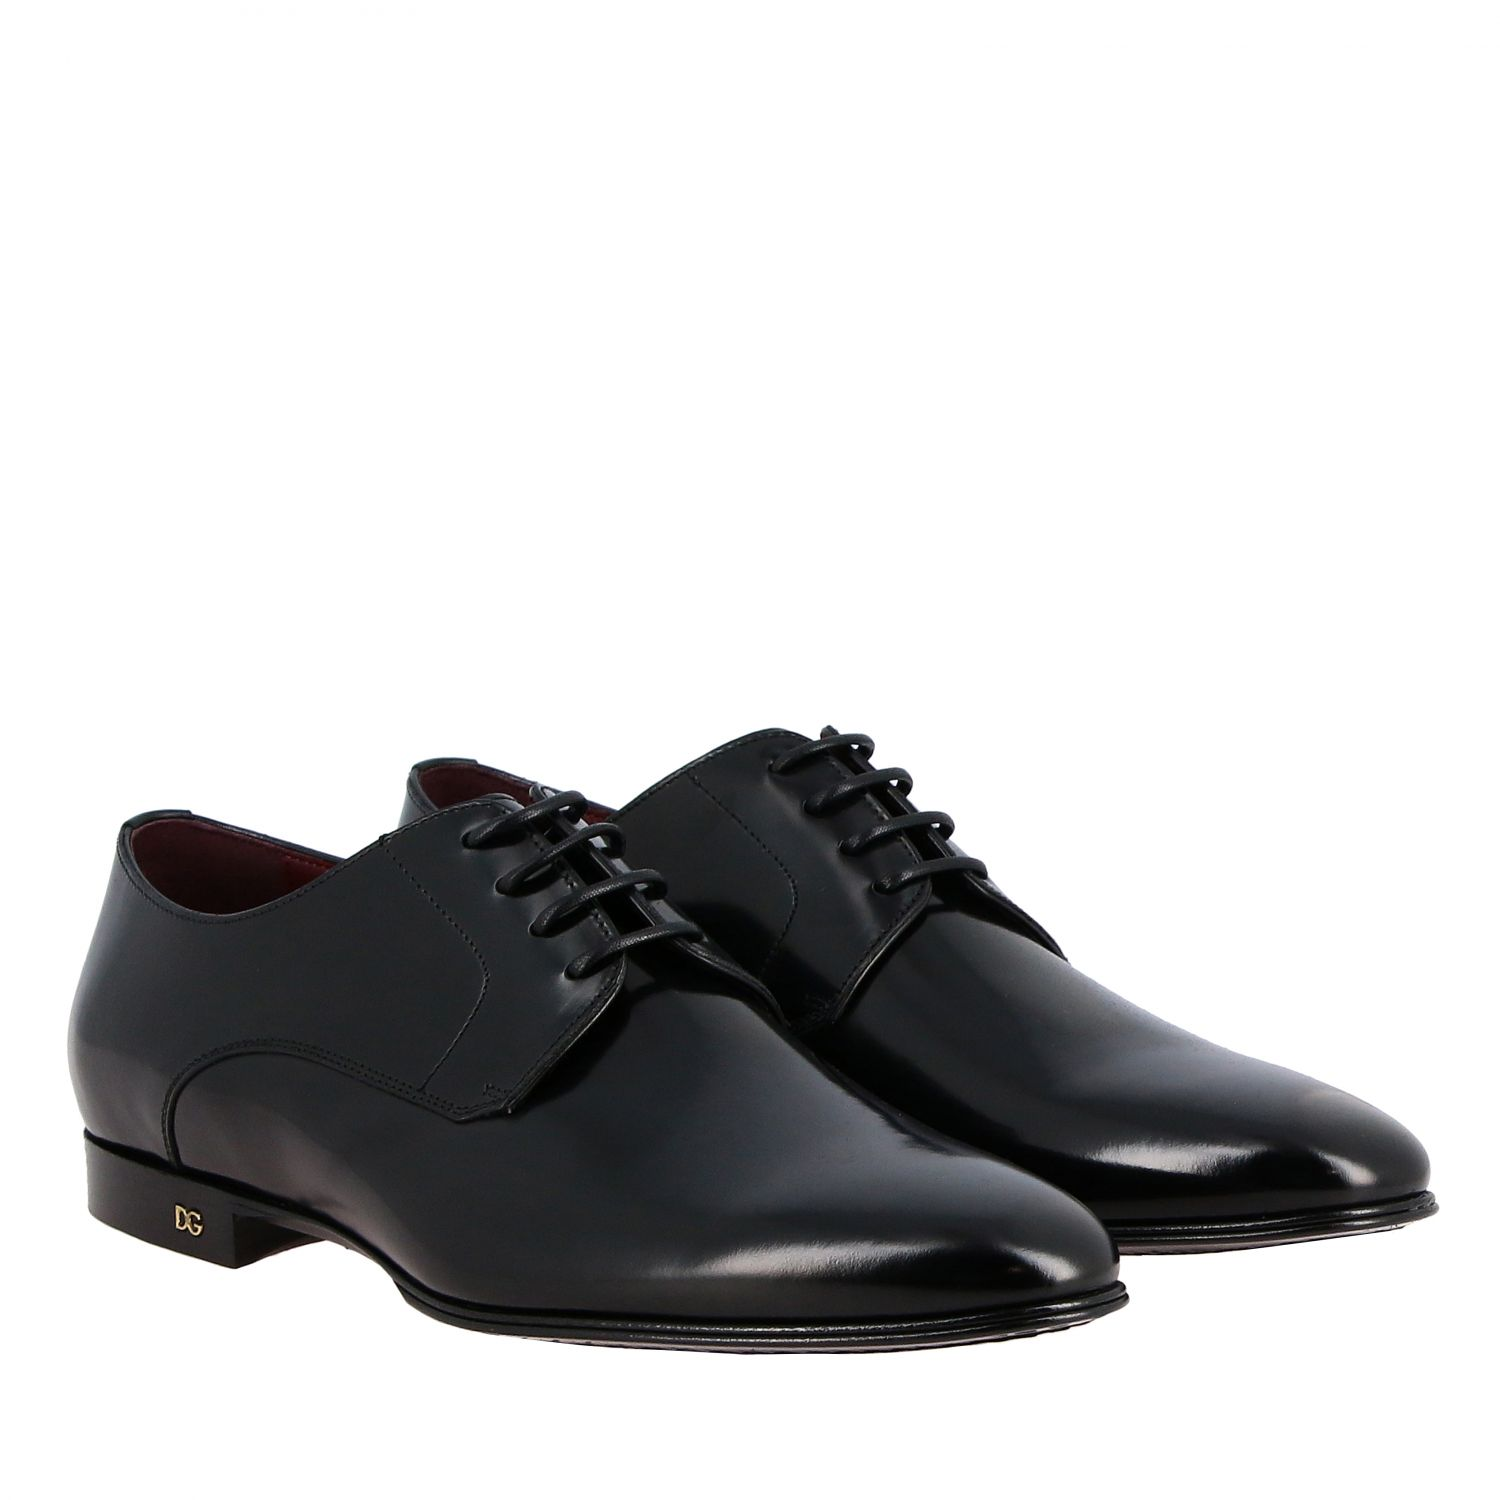 Brogue shoes Dolce & Gabbana: Dolce & Gabbana classic lace-up shoe in shiny leather black 2